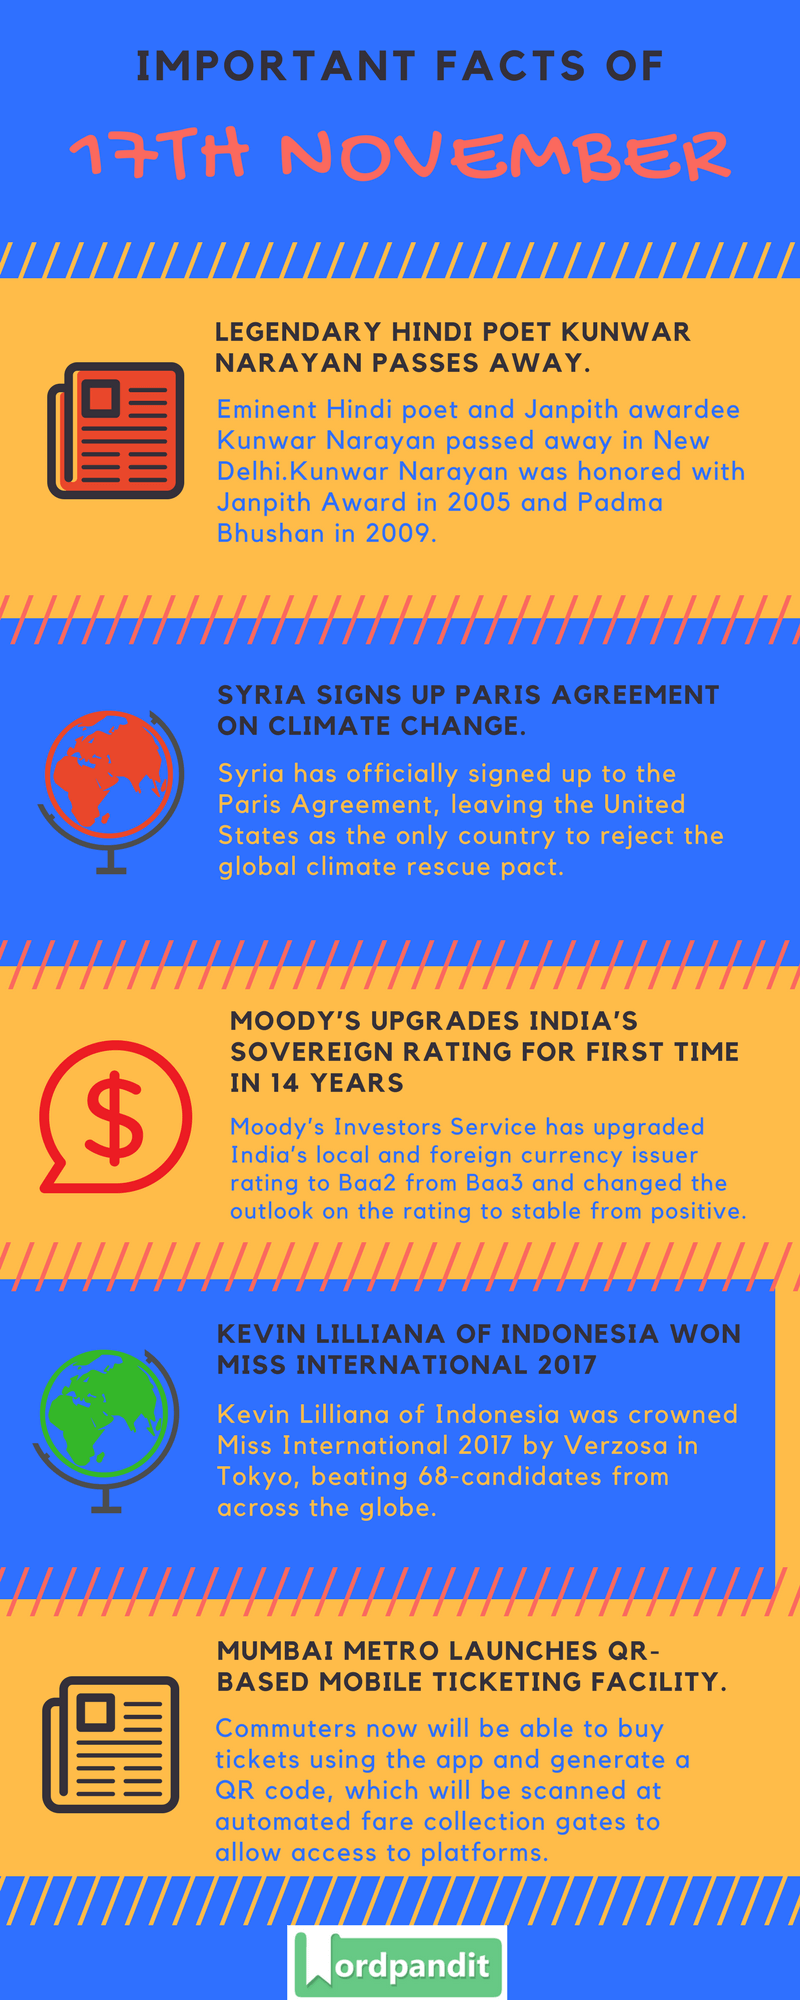 Daily-Current-Affairs-17-november-2017-Current-Affairs-Quiz-november-17-2017-Current-Affairs-Infographic